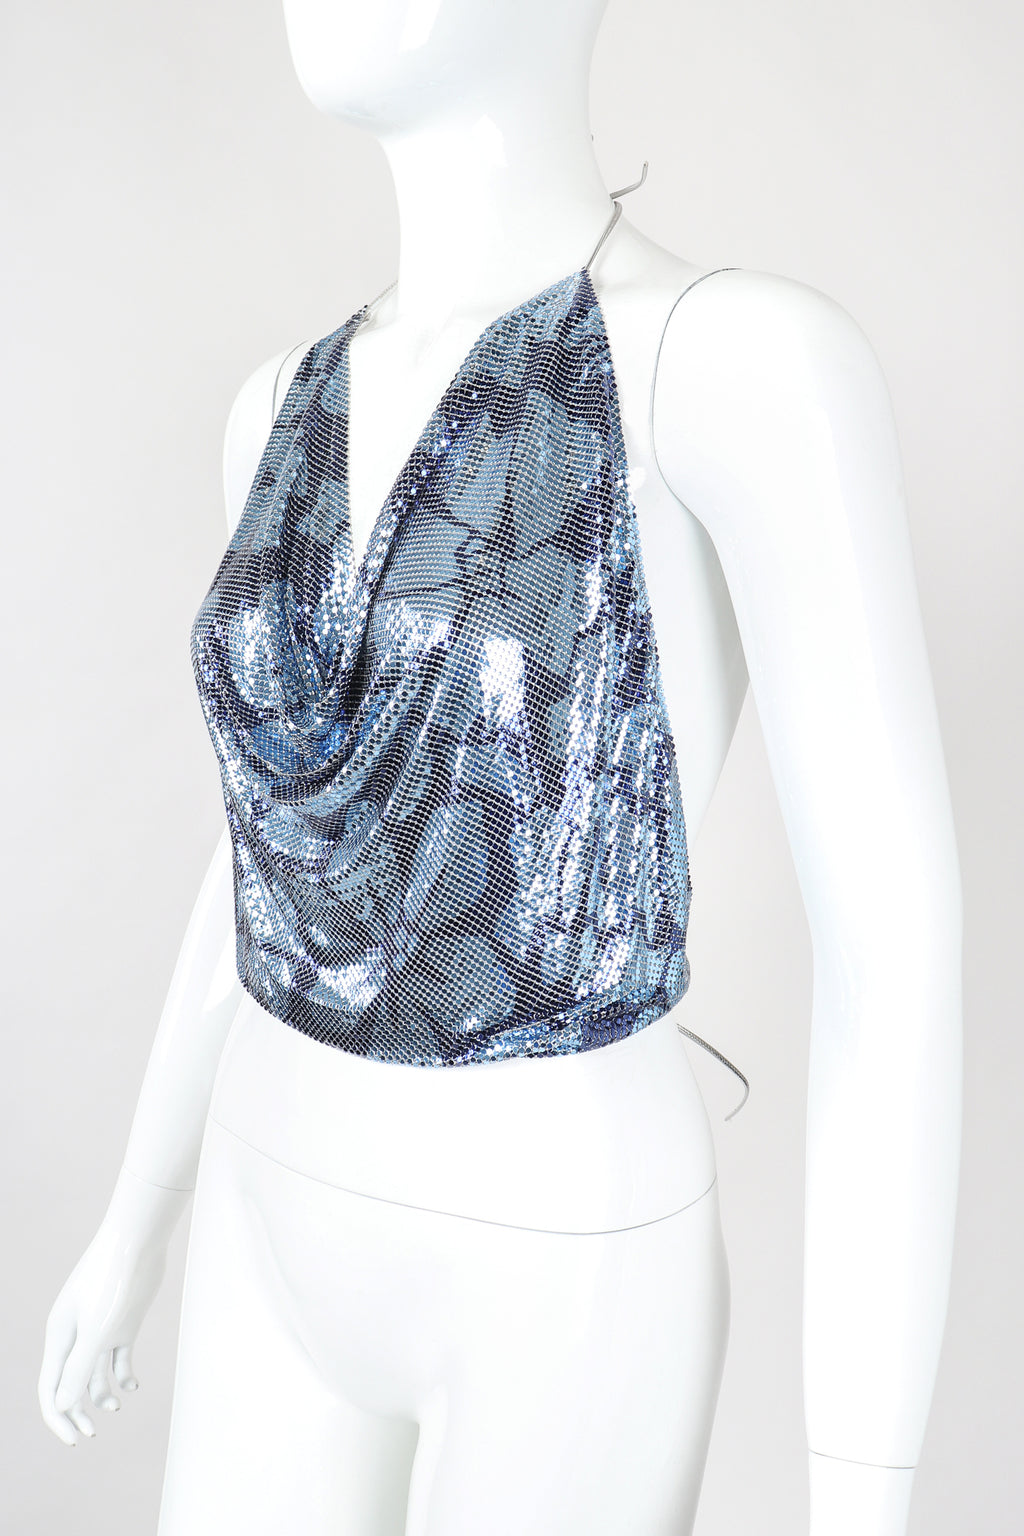 Recess Designer Consignment Vintage Whiting & Davis Rare Floral Metal Mesh Halter Top NYE Disco Ball Los Angeles Resale